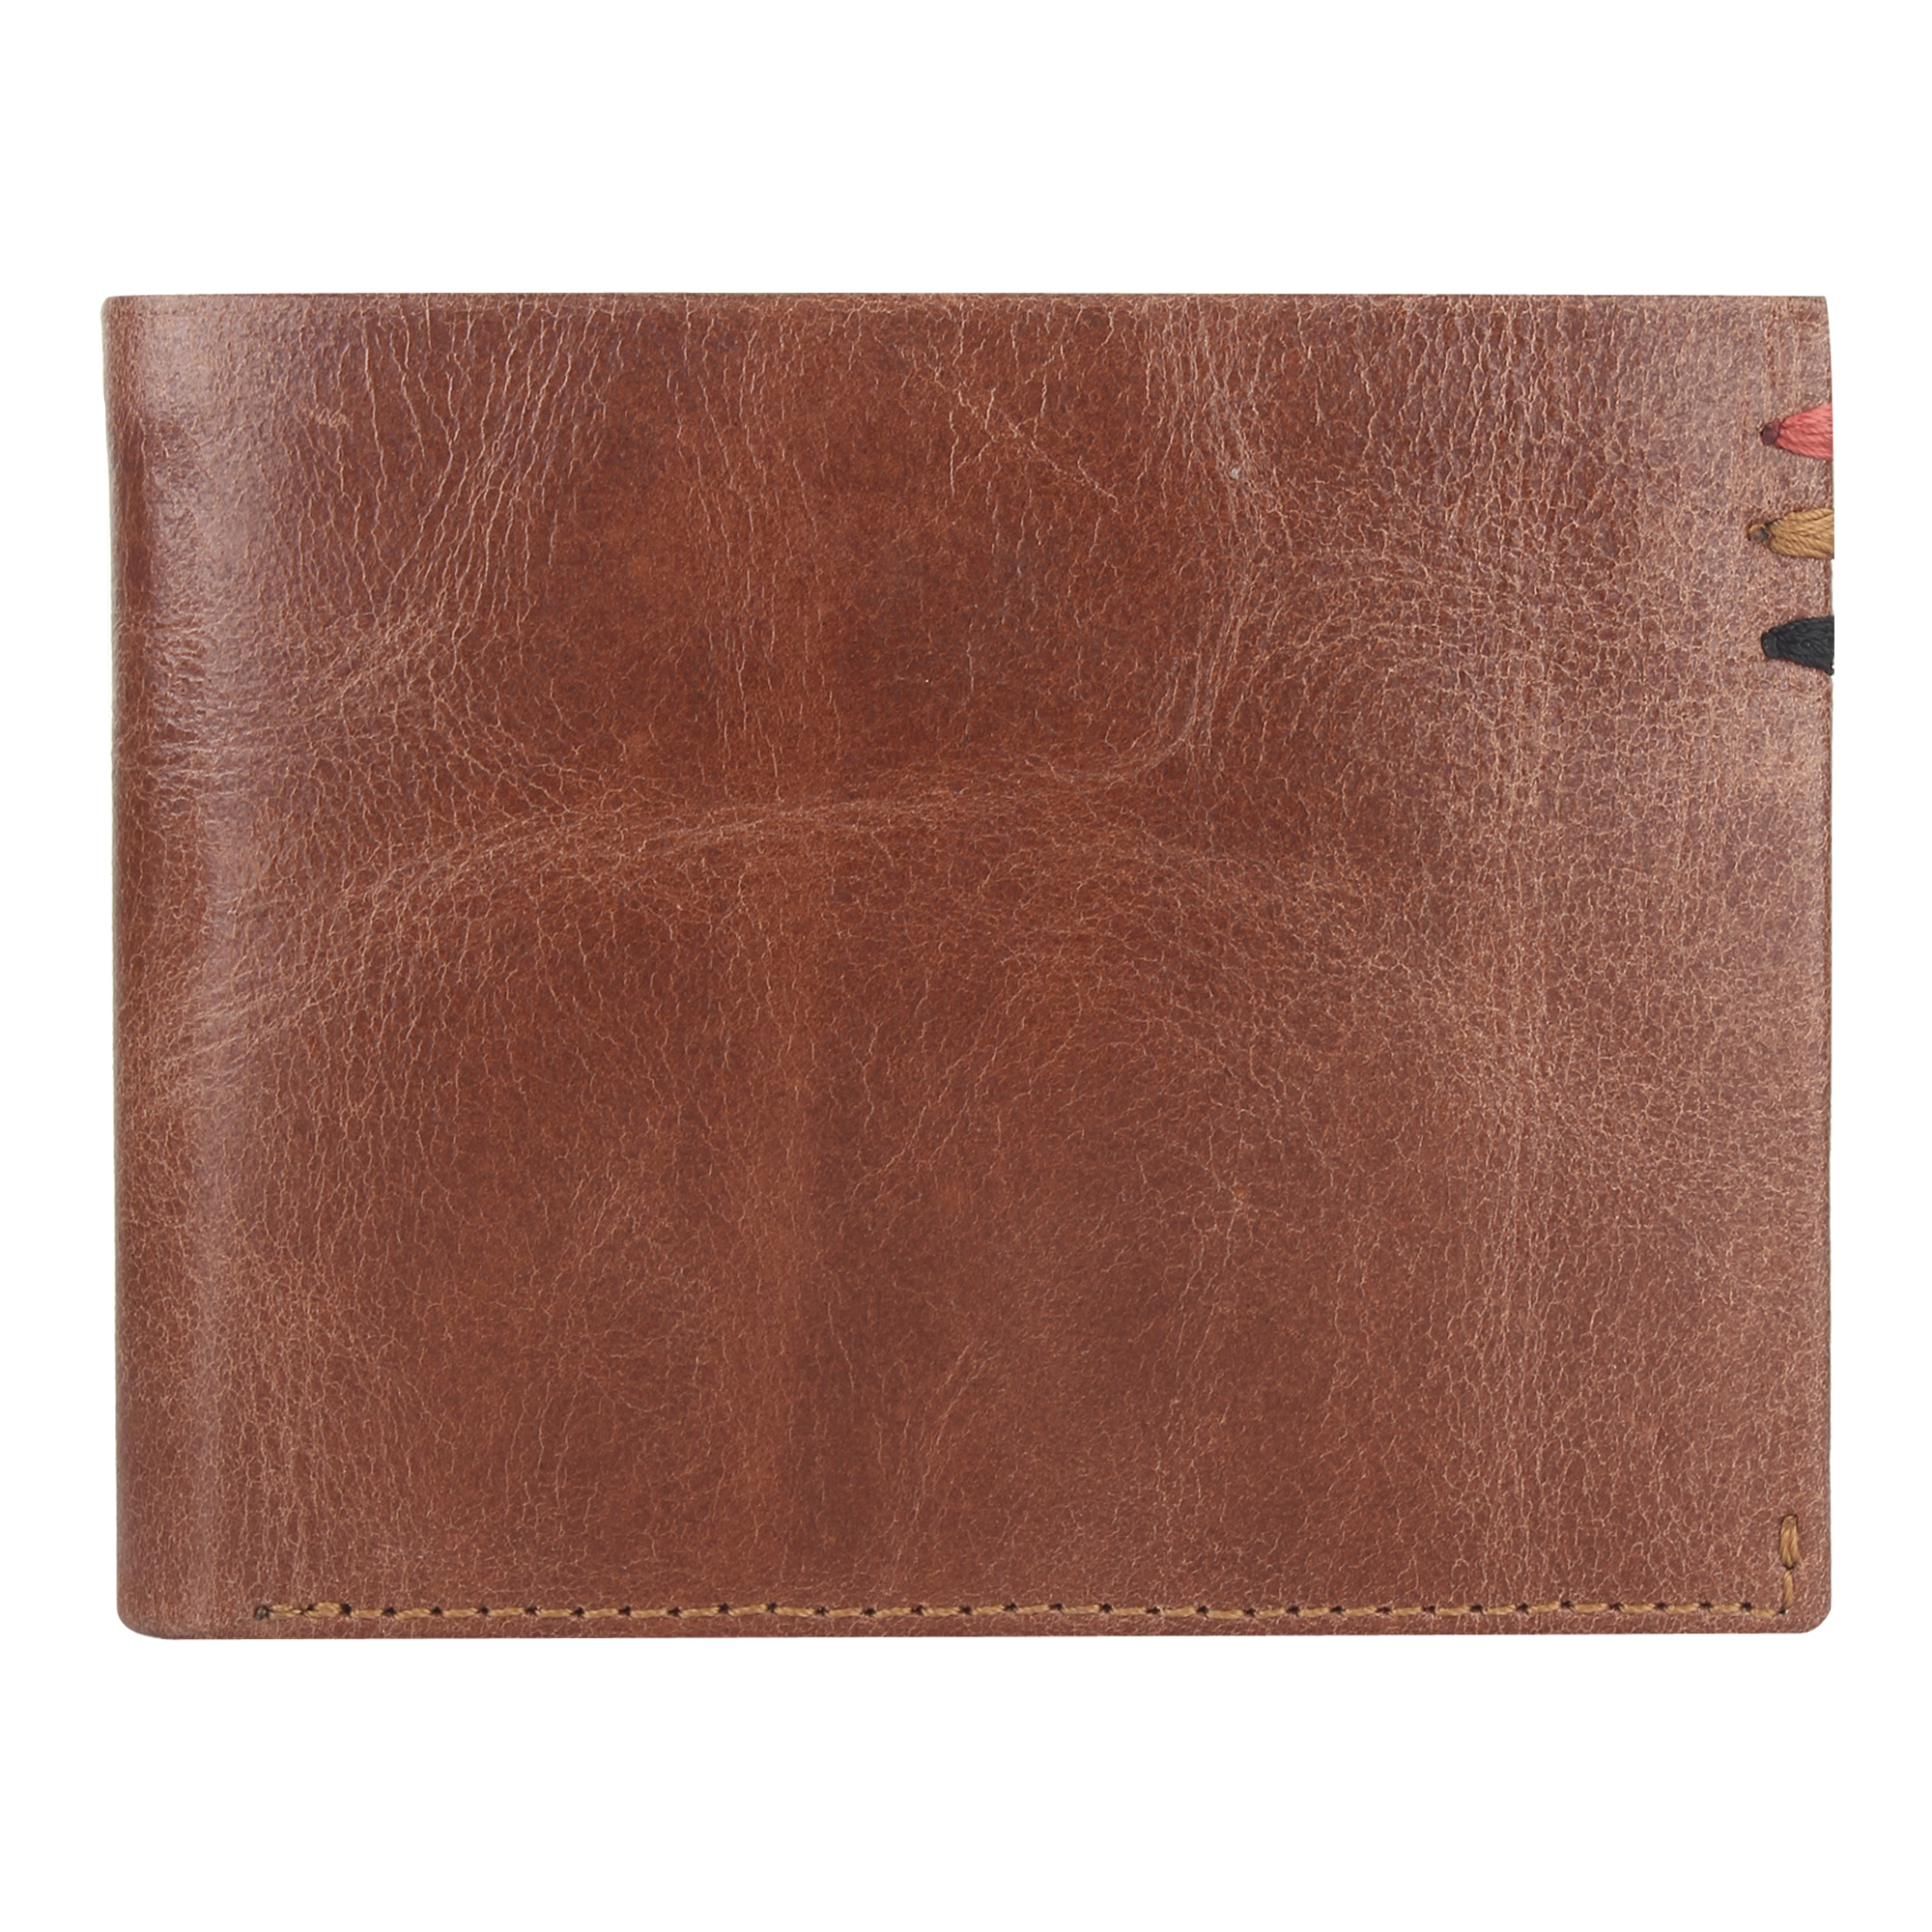 Leather Wallets Manufacturers in Bangalore, Leather Wallets Suppliers in Bangalore, Leather Wallets Wholesalers in Bangalore, Leather Wallets Traders in Bangalore, custom leather wallet manufacturers in Bangalore, Leathe